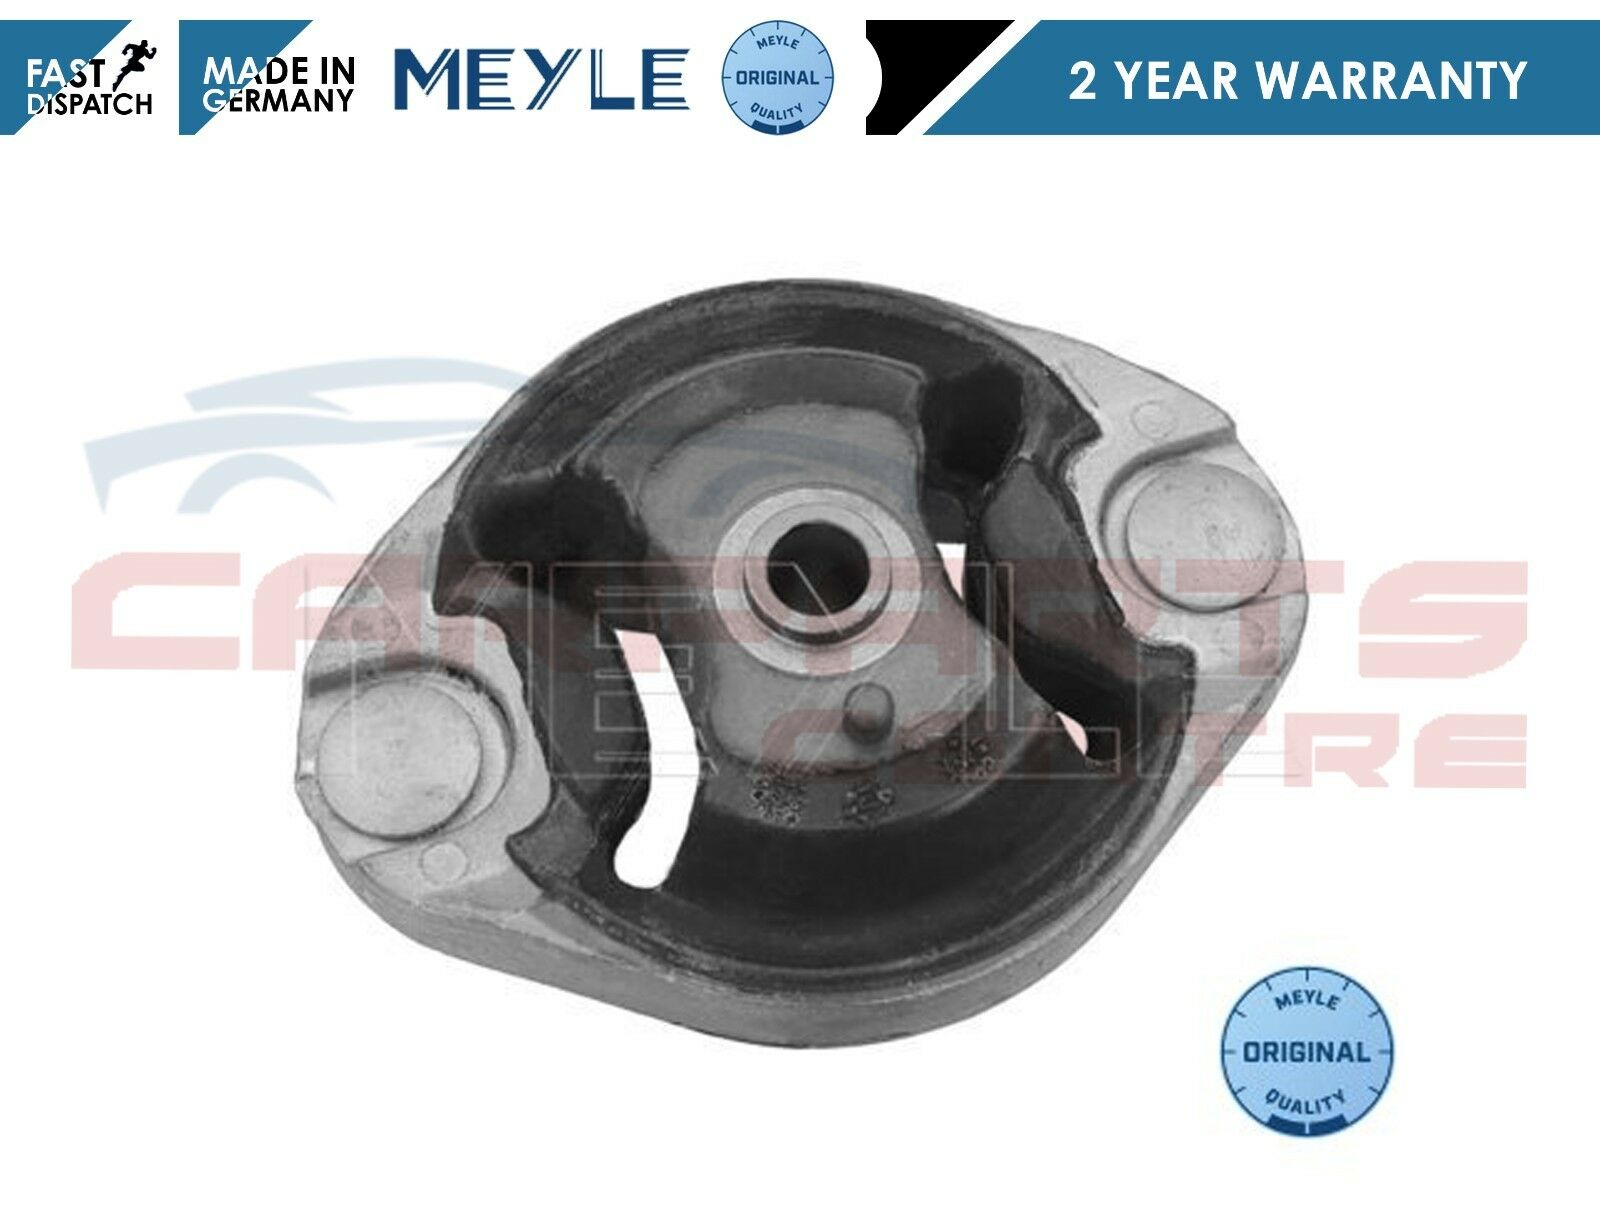 For Audi A4 B6 B7 Manual 6 Speed New Lower Gear Box Transmission Mount  Mounting 1 of 2FREE Shipping ...